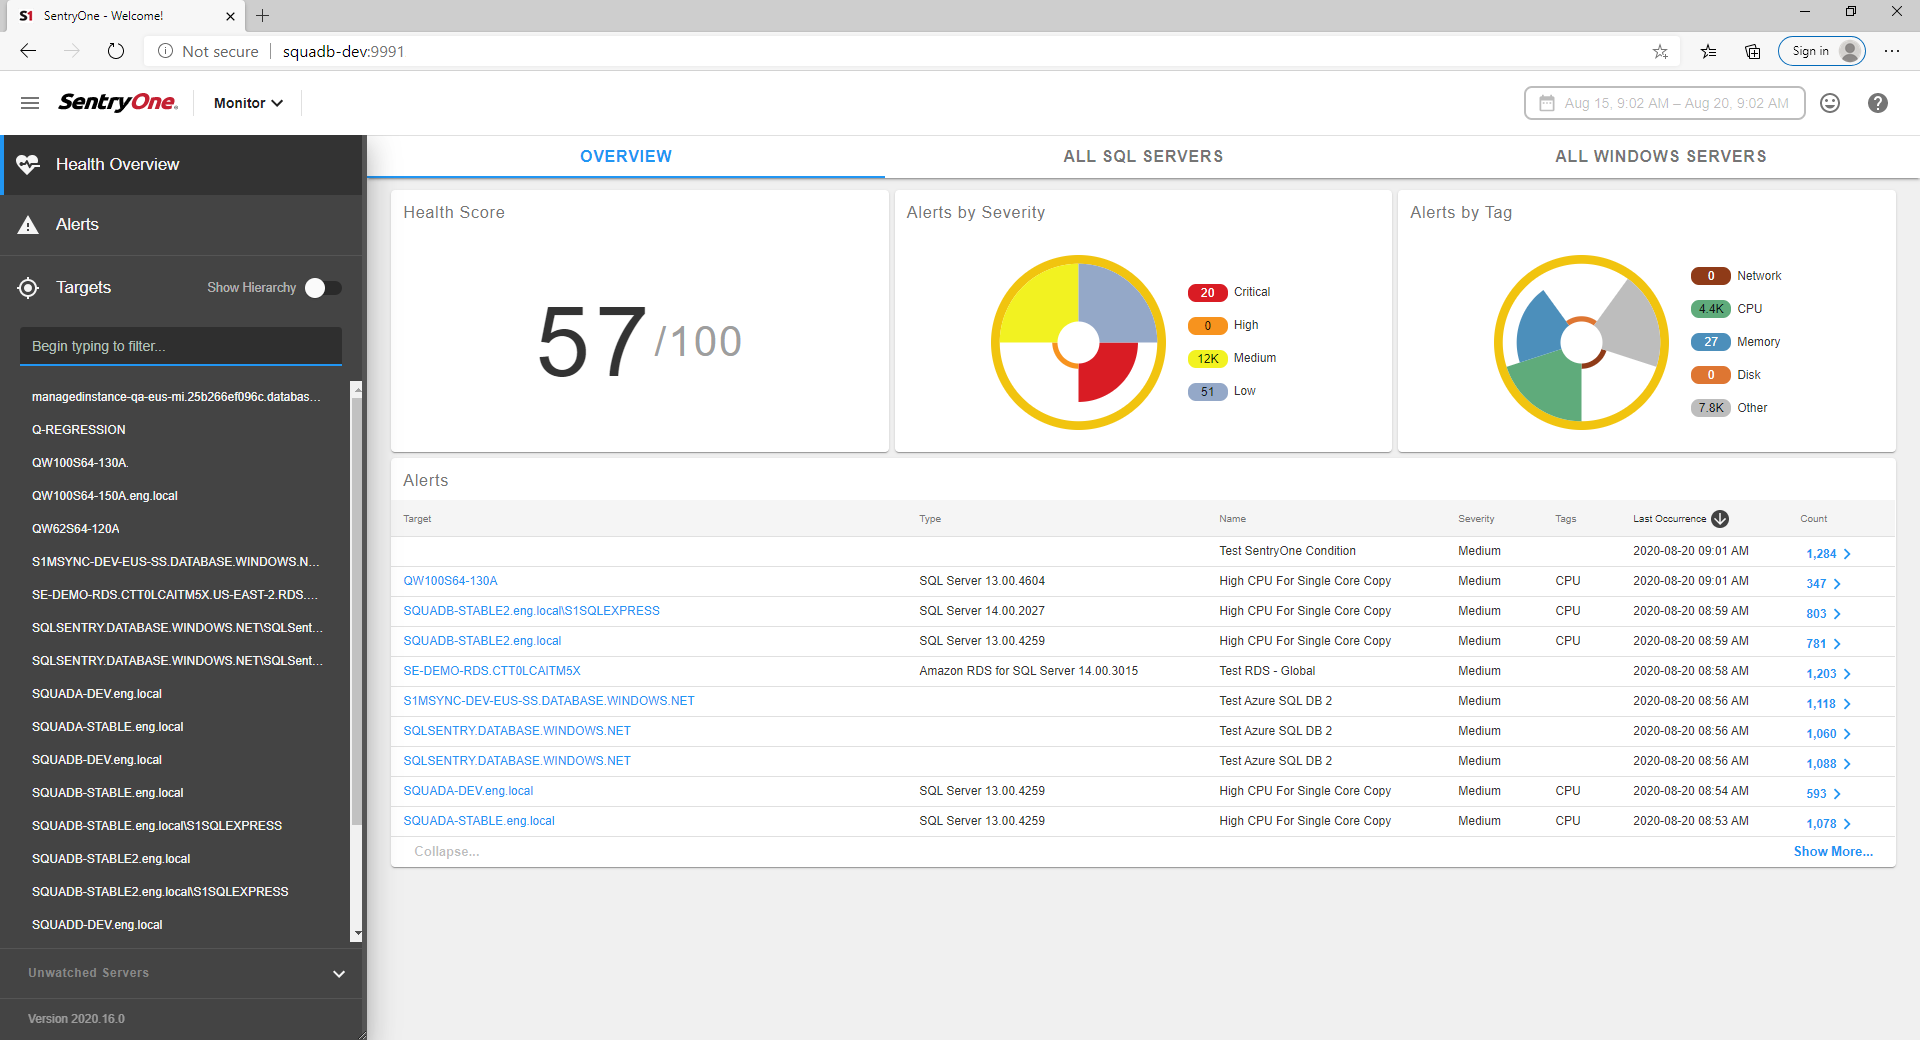 SentryOne Portal Dashboard